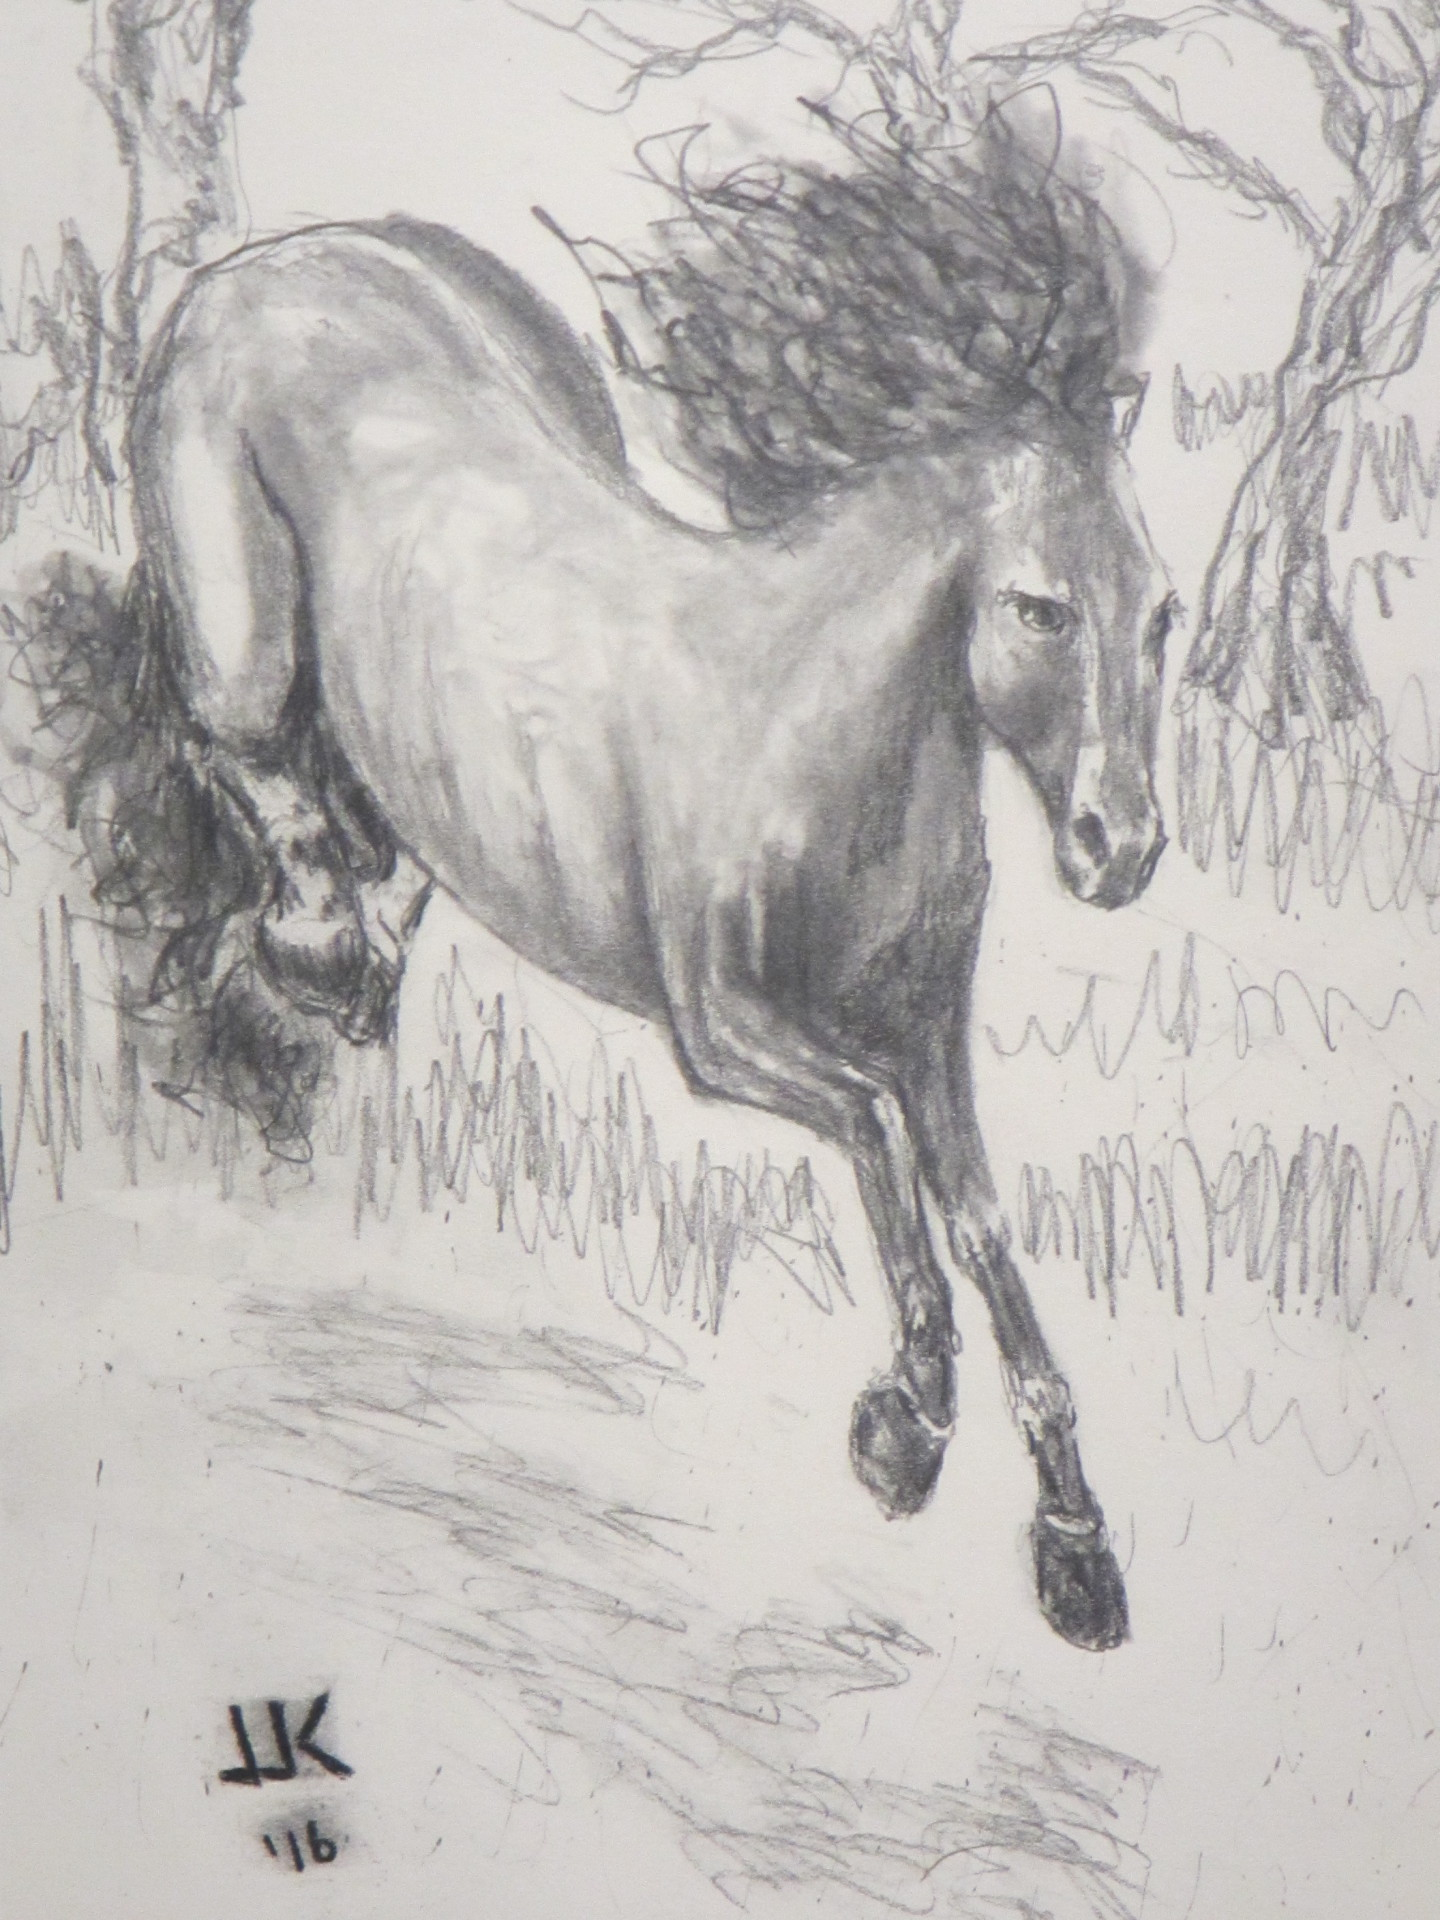 Pencil drawing of a horse bucking.